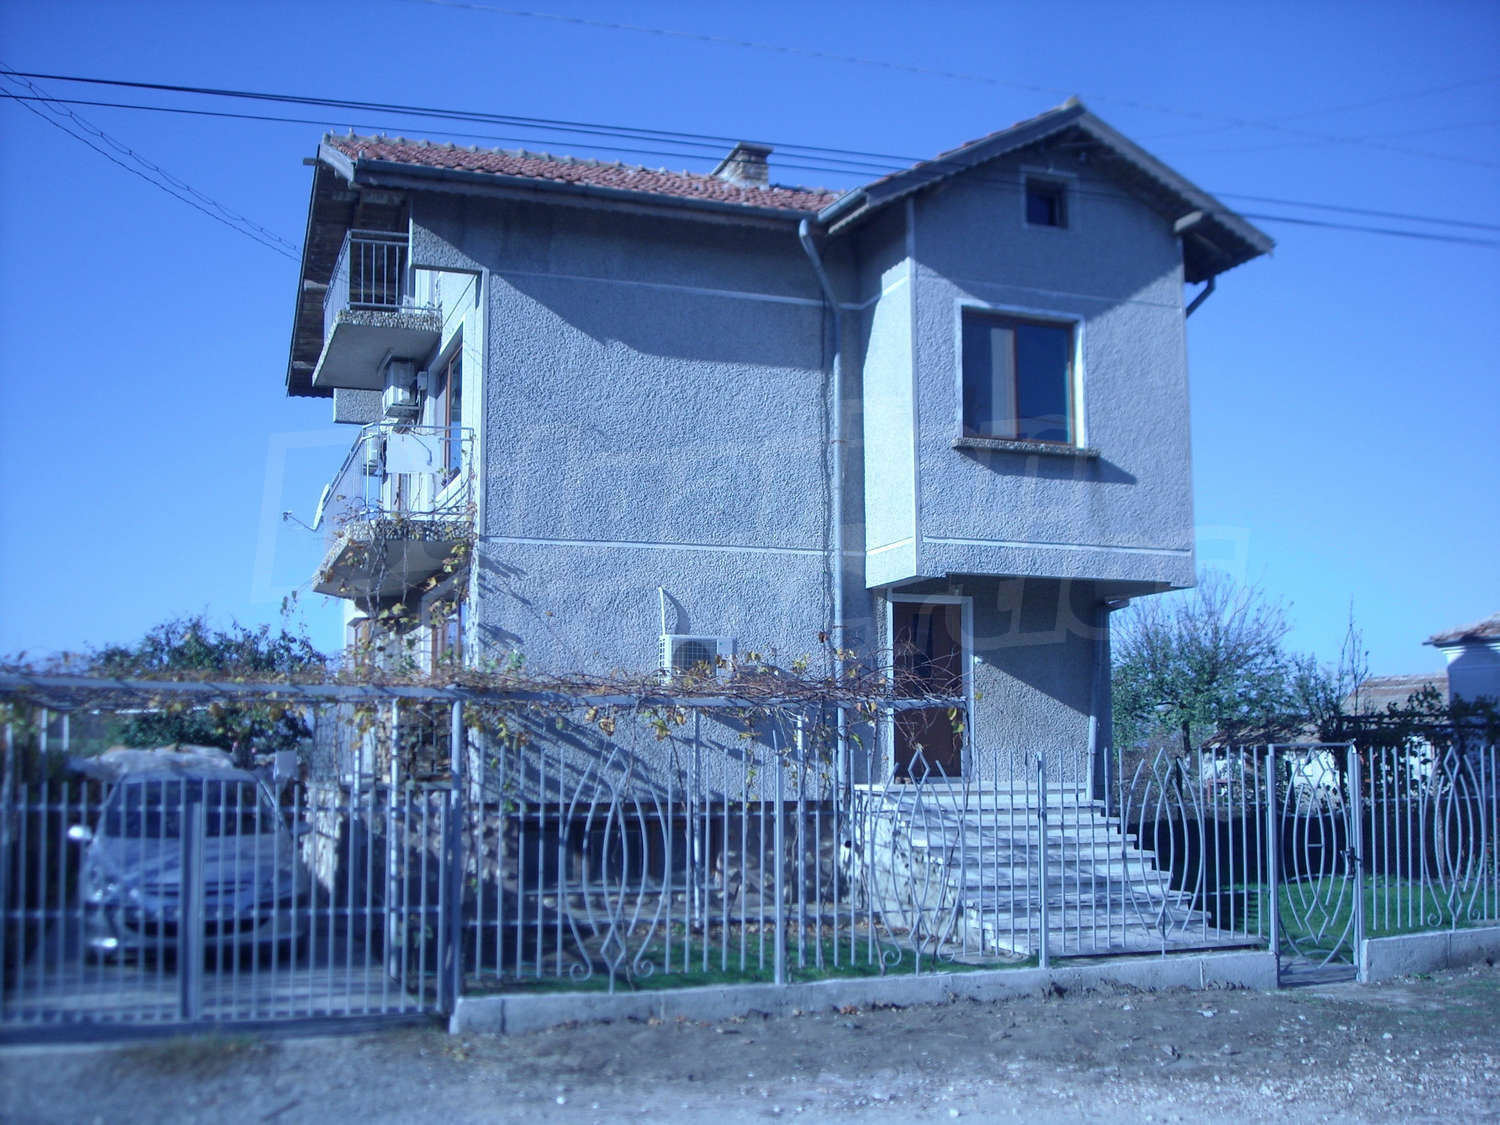 House for sale near dobrich albena bulgaria nice big for Big nice houses for sale